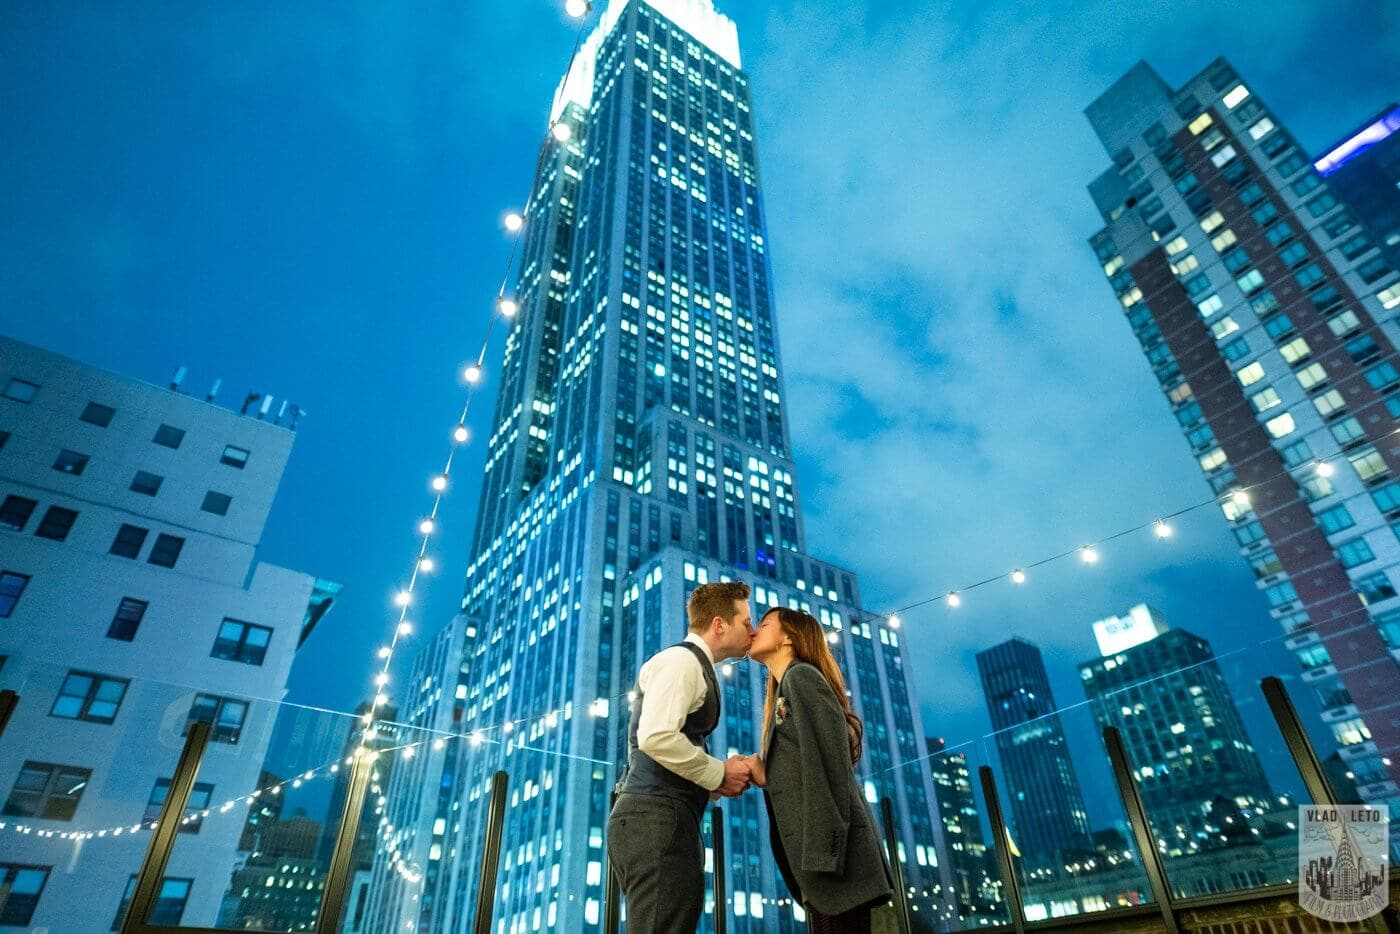 Photo 5 Wedding proposal on a private rooftop with Empire State building view. | VladLeto